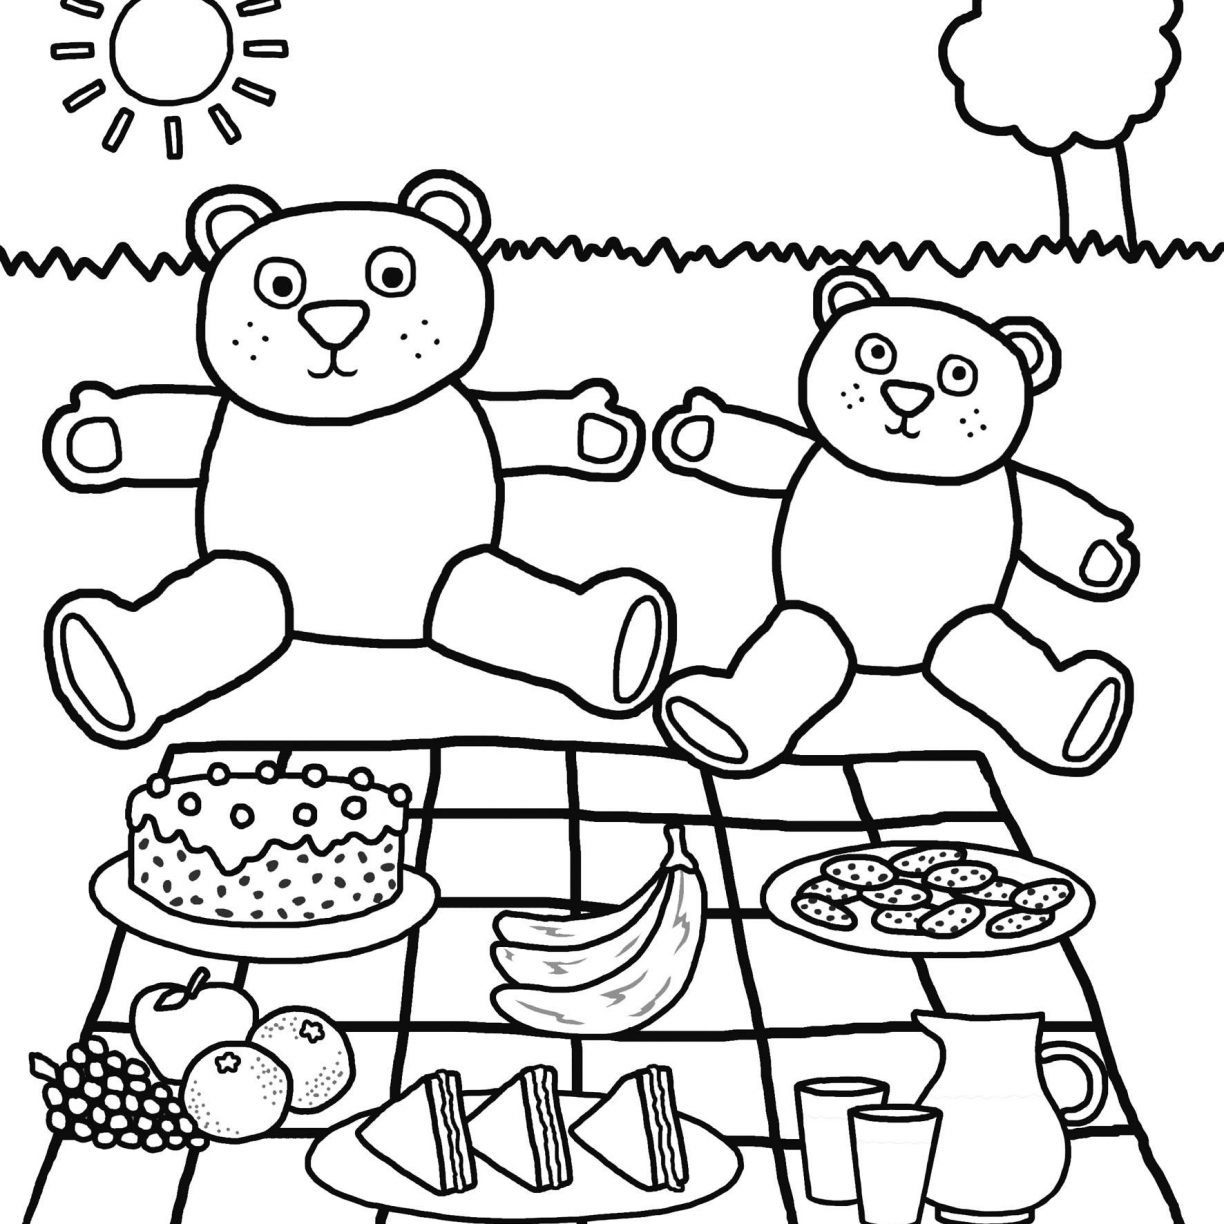 1224x1224 Print Free Back To School Coloring Page Pages Preschool Printable